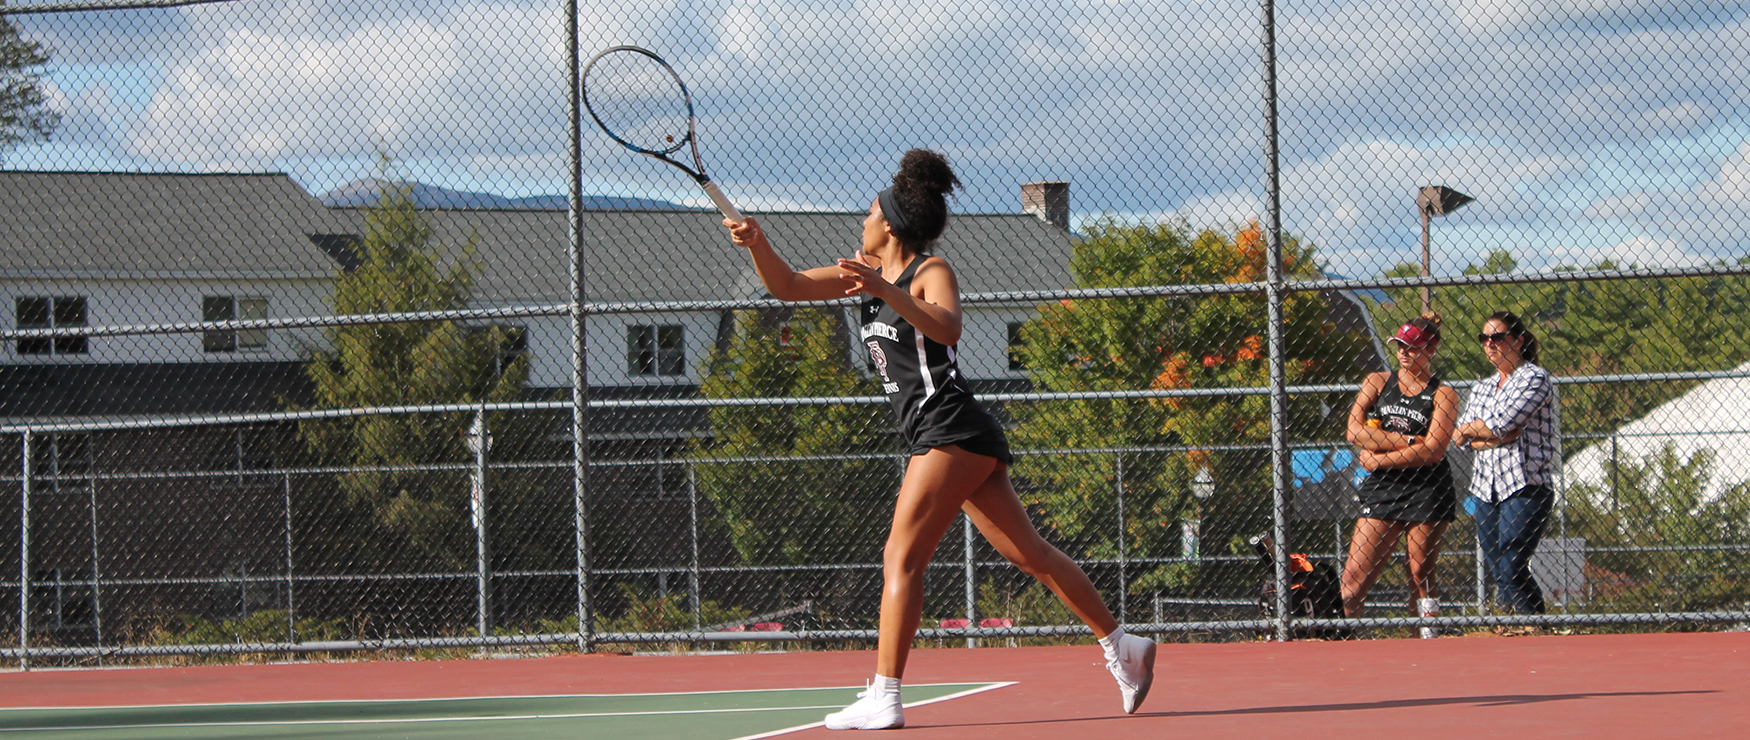 Women's Tennis Downed at SNHU, 5-2